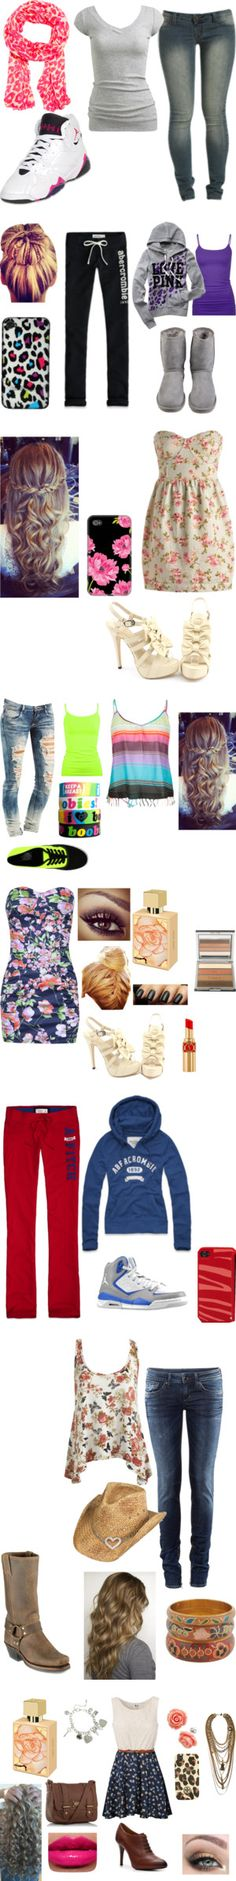 """All my favorite sets (:"" by peyton-snyder-1 ❤ liked on Polyvore"